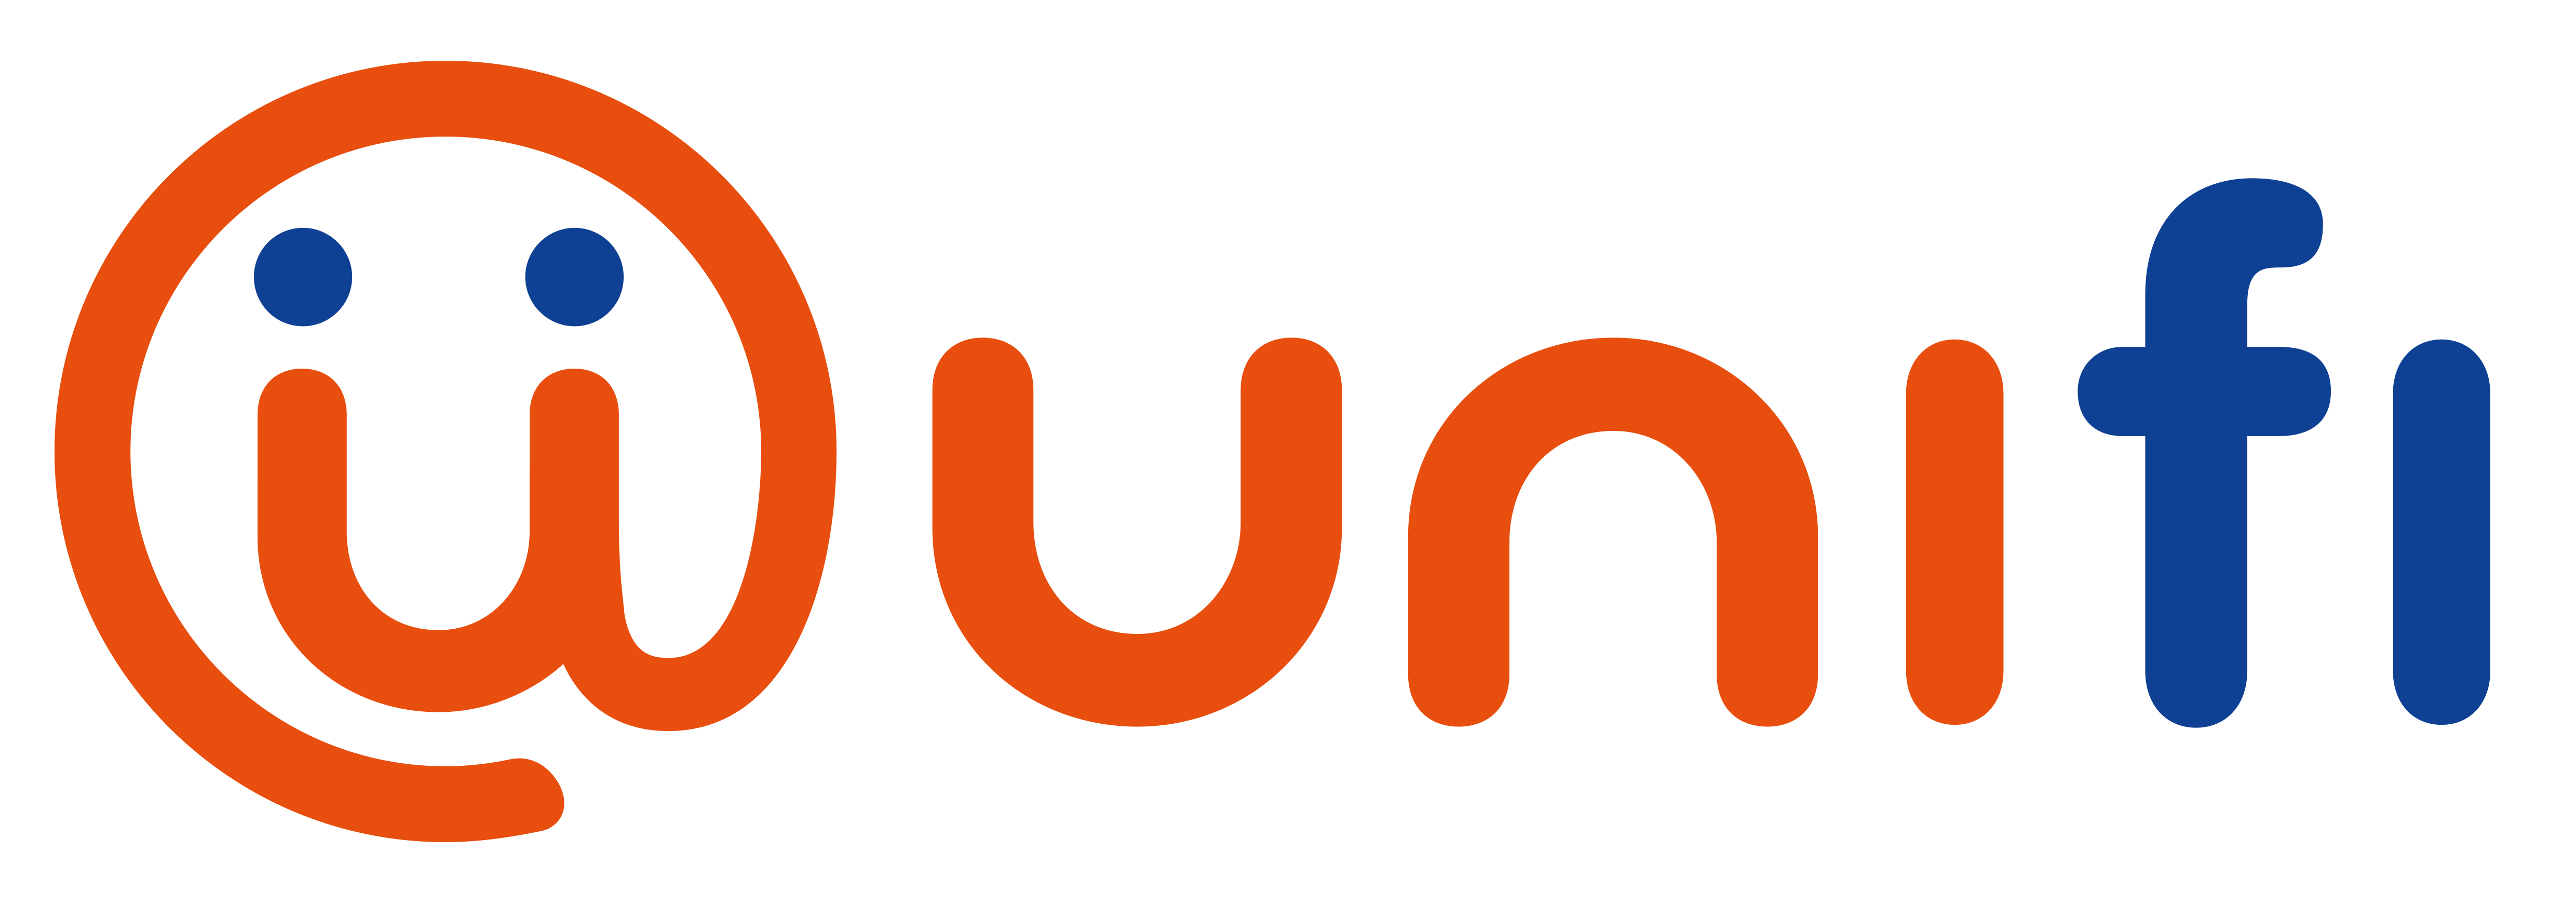 Unifi download free clip art with a transparent background.